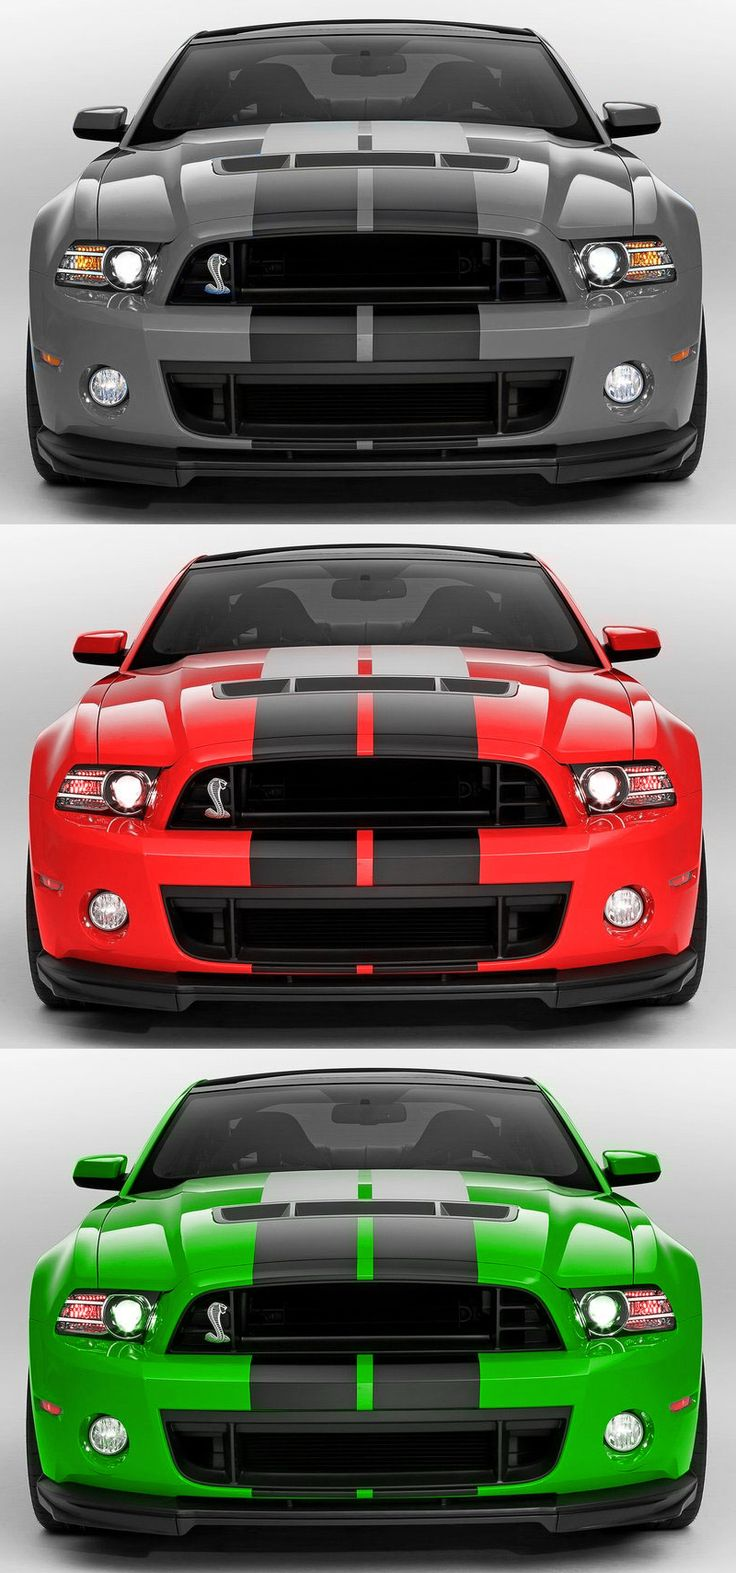 2013 GT500 600 BHP 200 MHP.  Which color do I get? Gotta have coordinating outfit choices lol